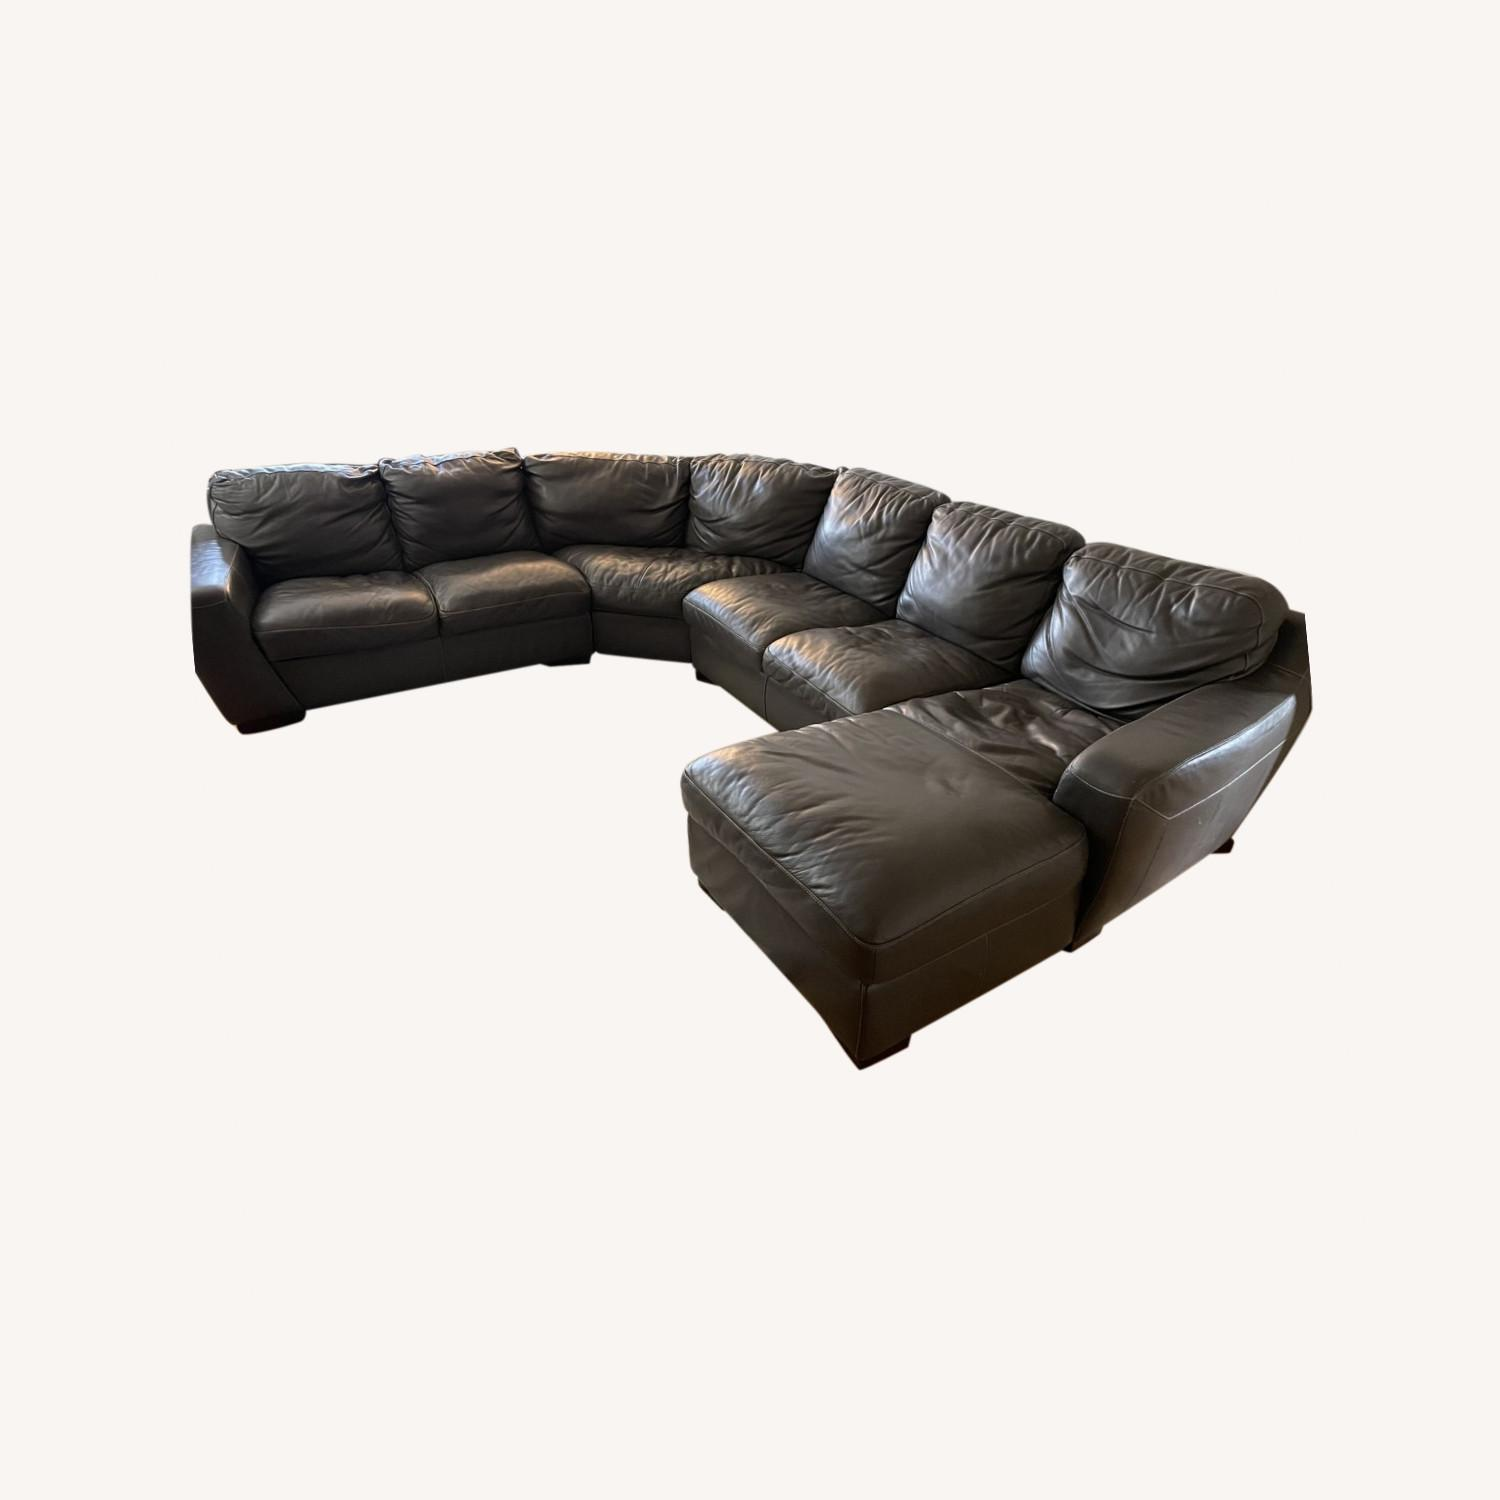 Raymour and Flanigan Leather Sectional Sofa - image-0